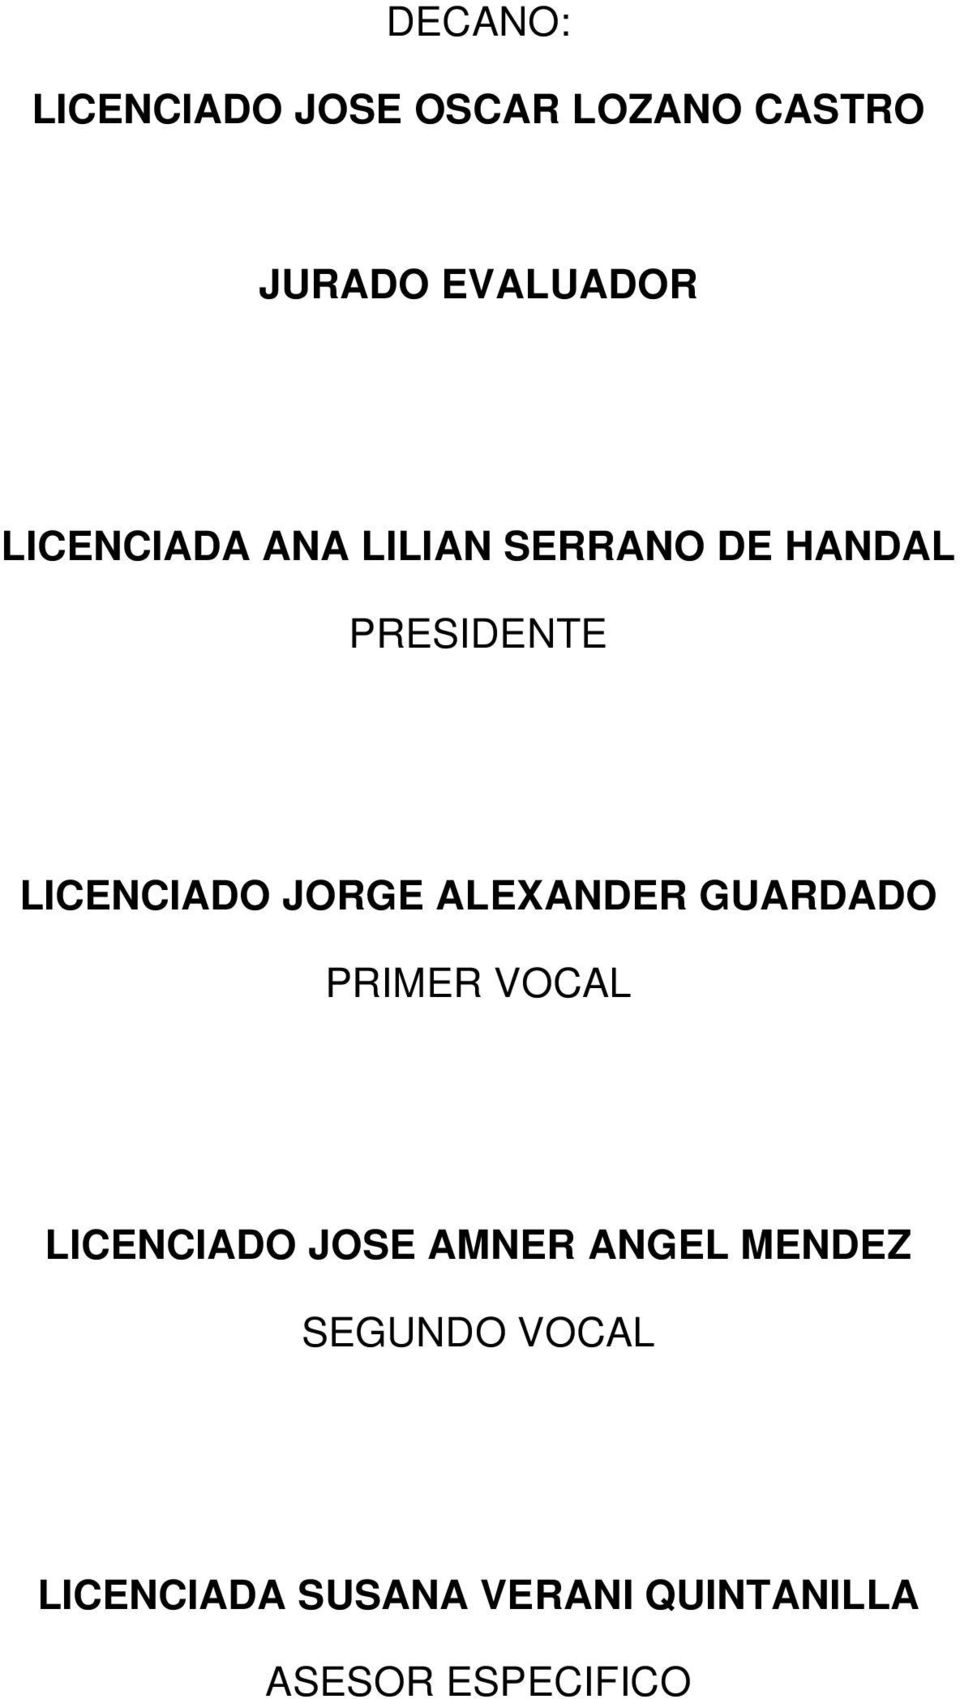 JORGE ALEXANDER GUARDADO PRIMER VOCAL LICENCIADO JOSE AMNER ANGEL